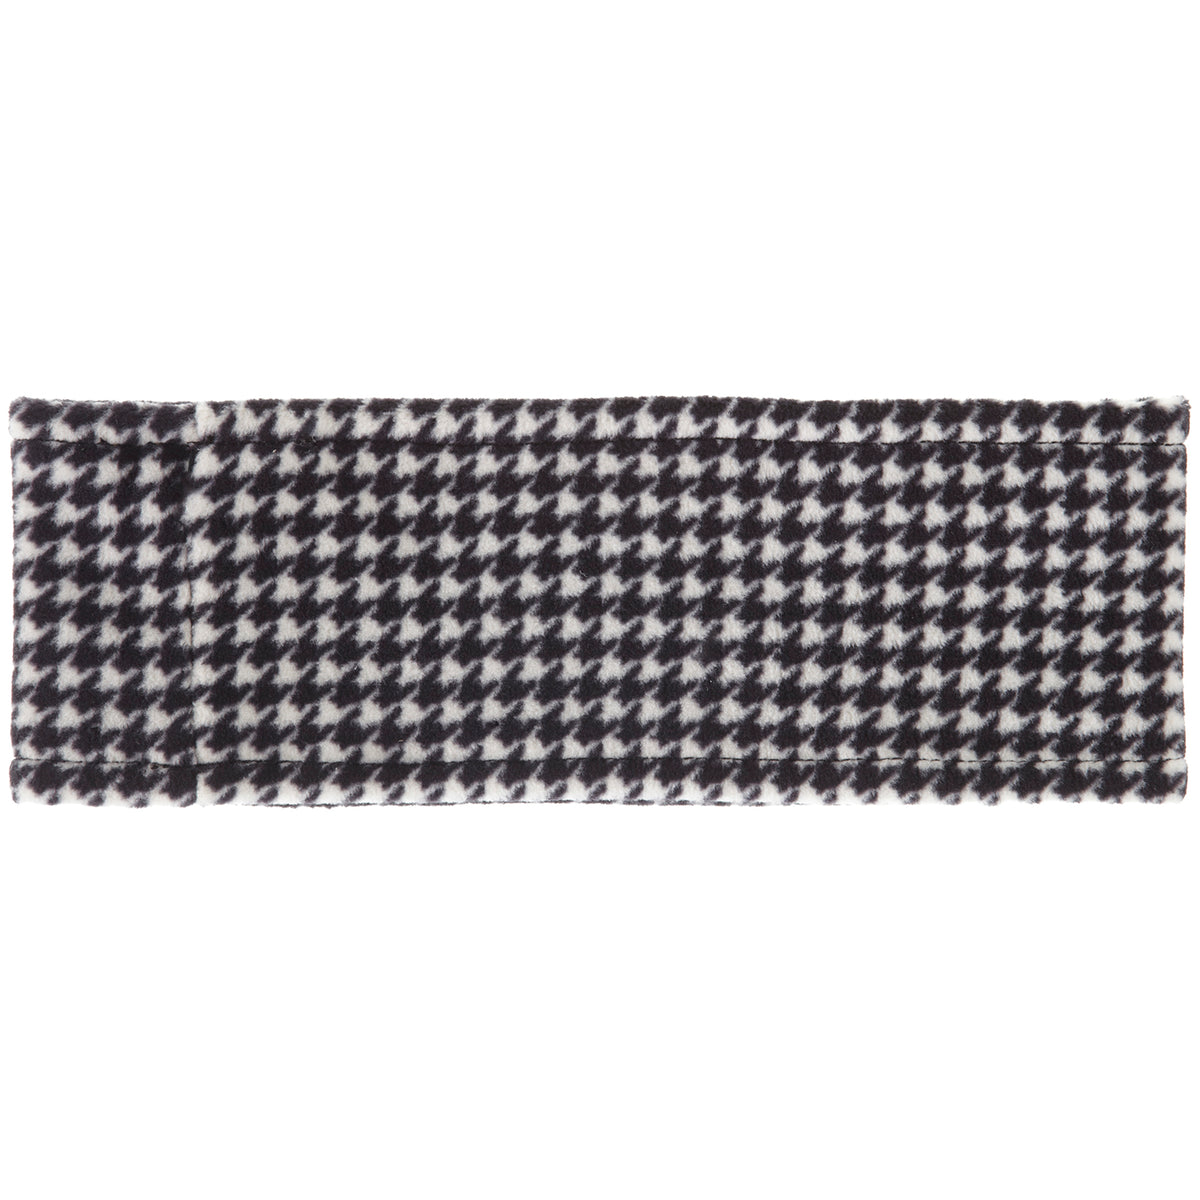 Women's Reversible Fleece Headband in Houndstooth